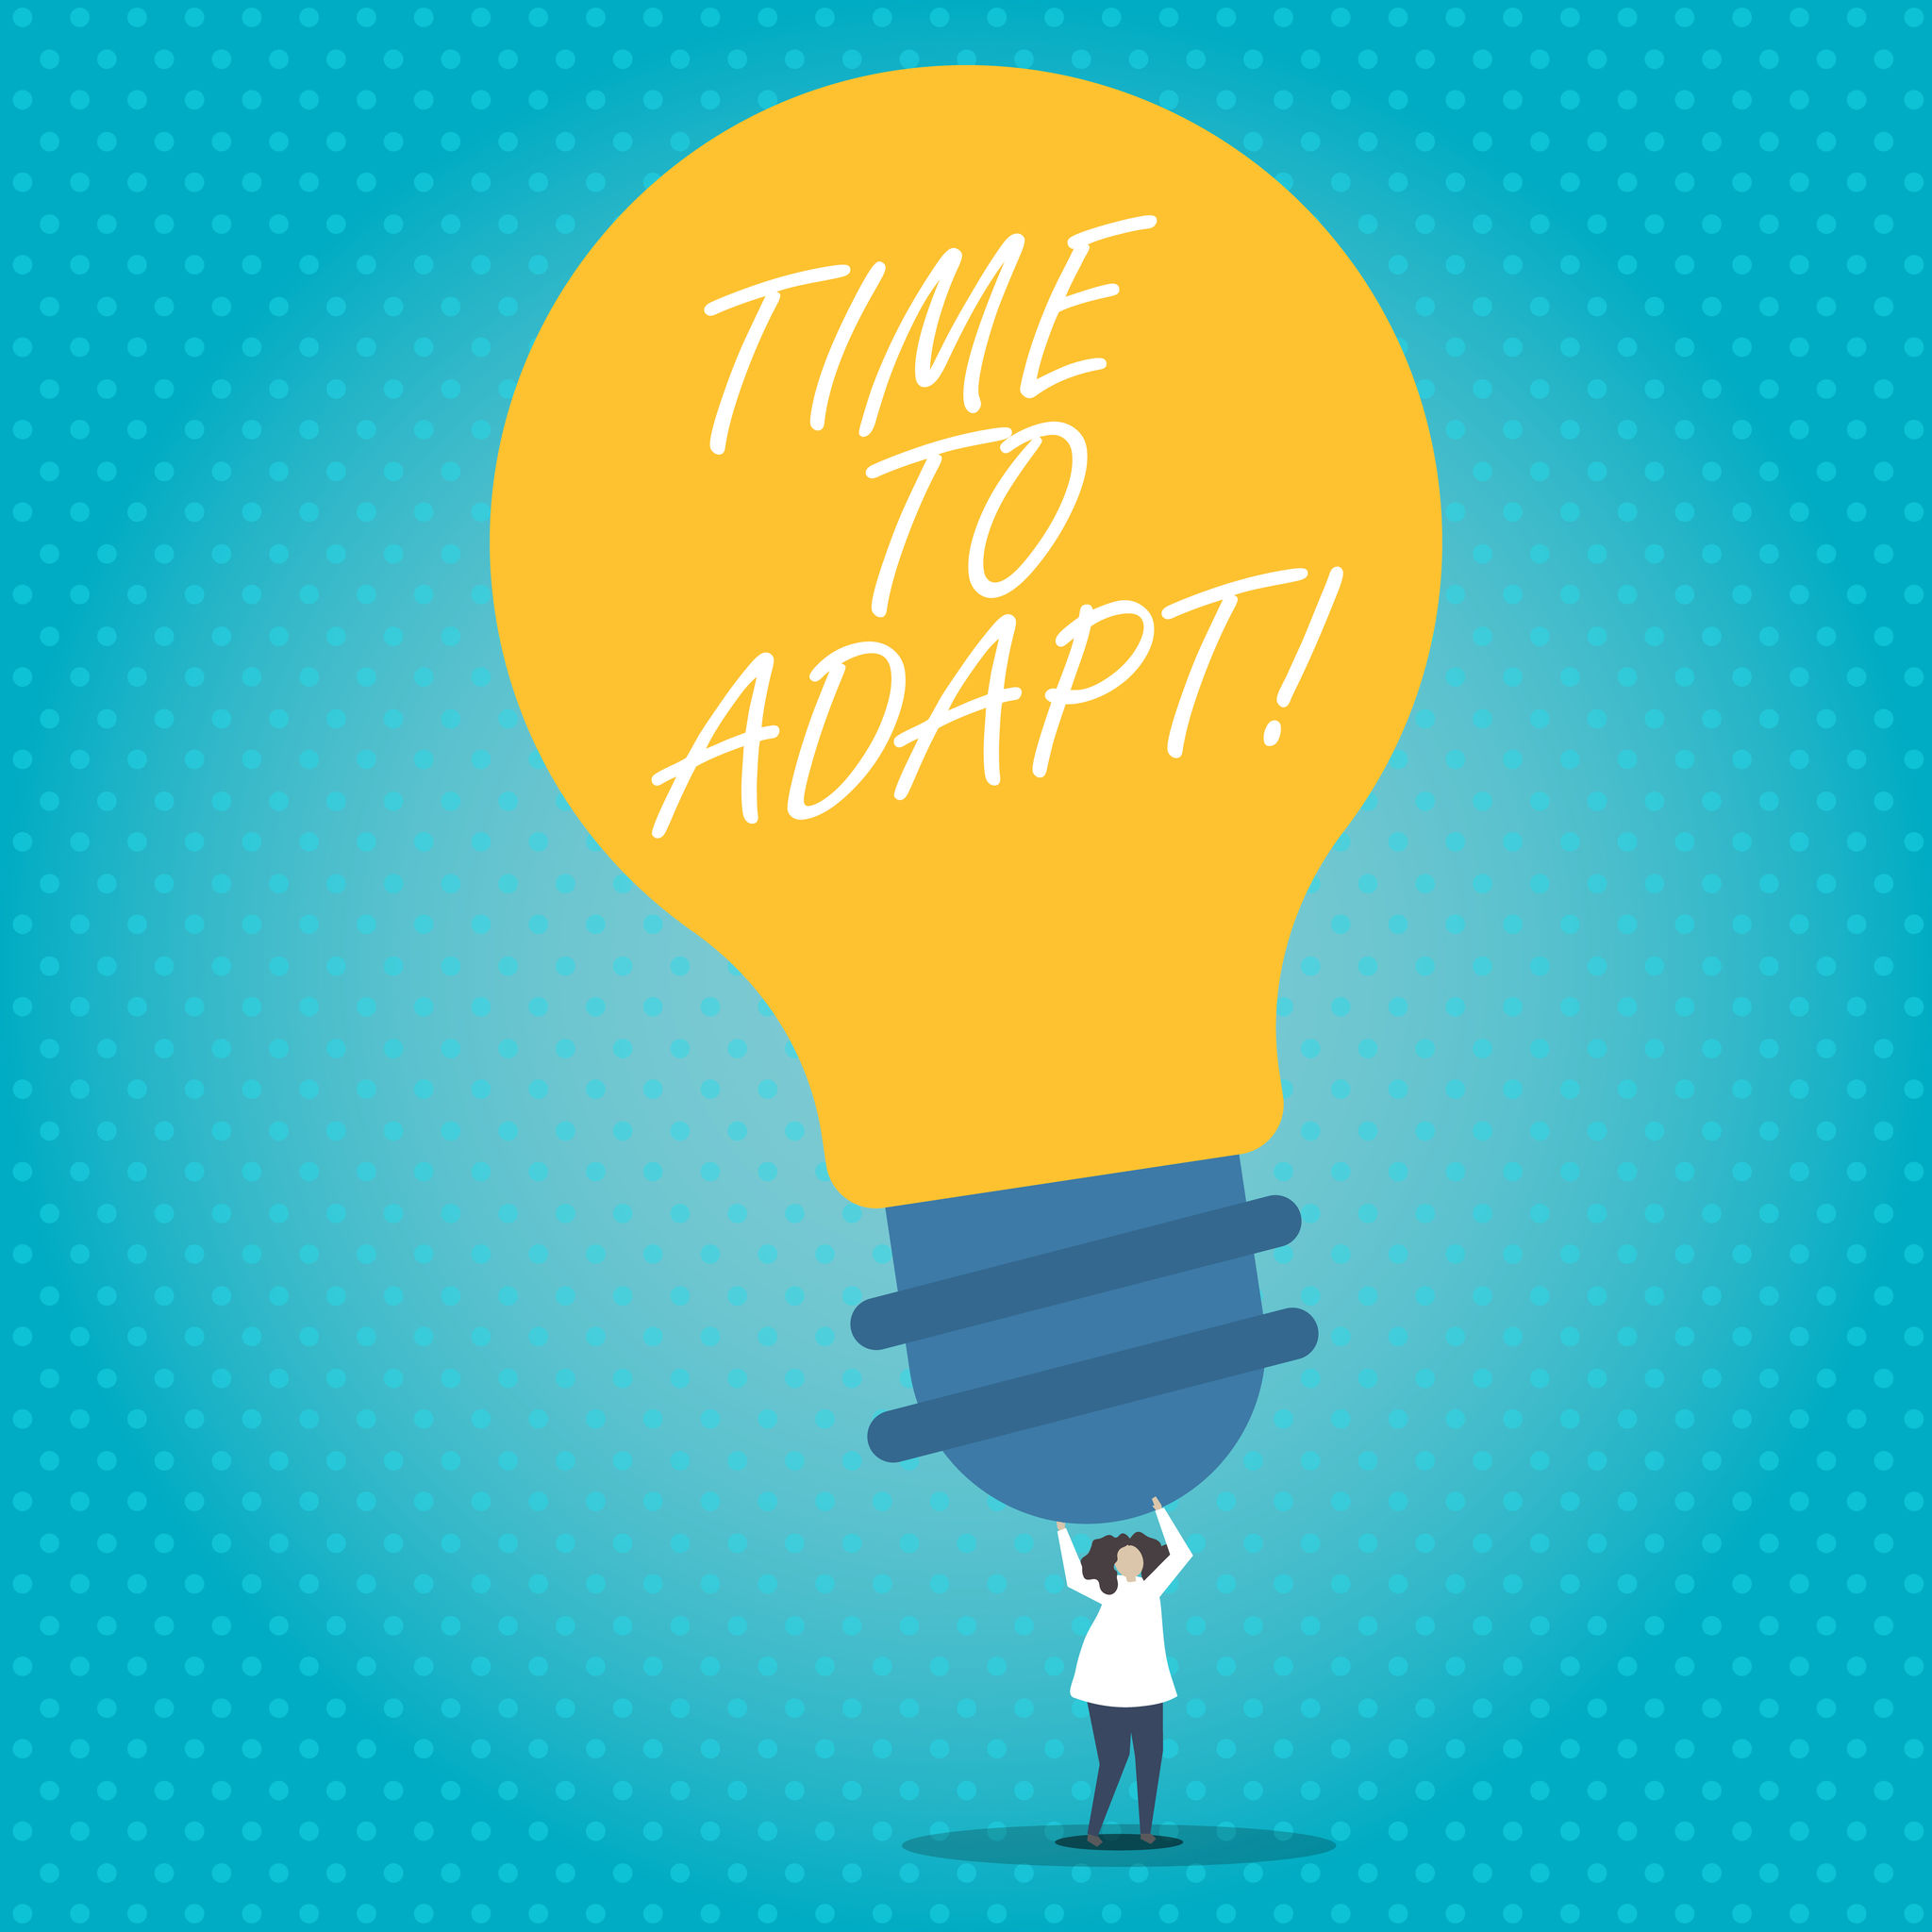 time to adapt on a light bulb illustration